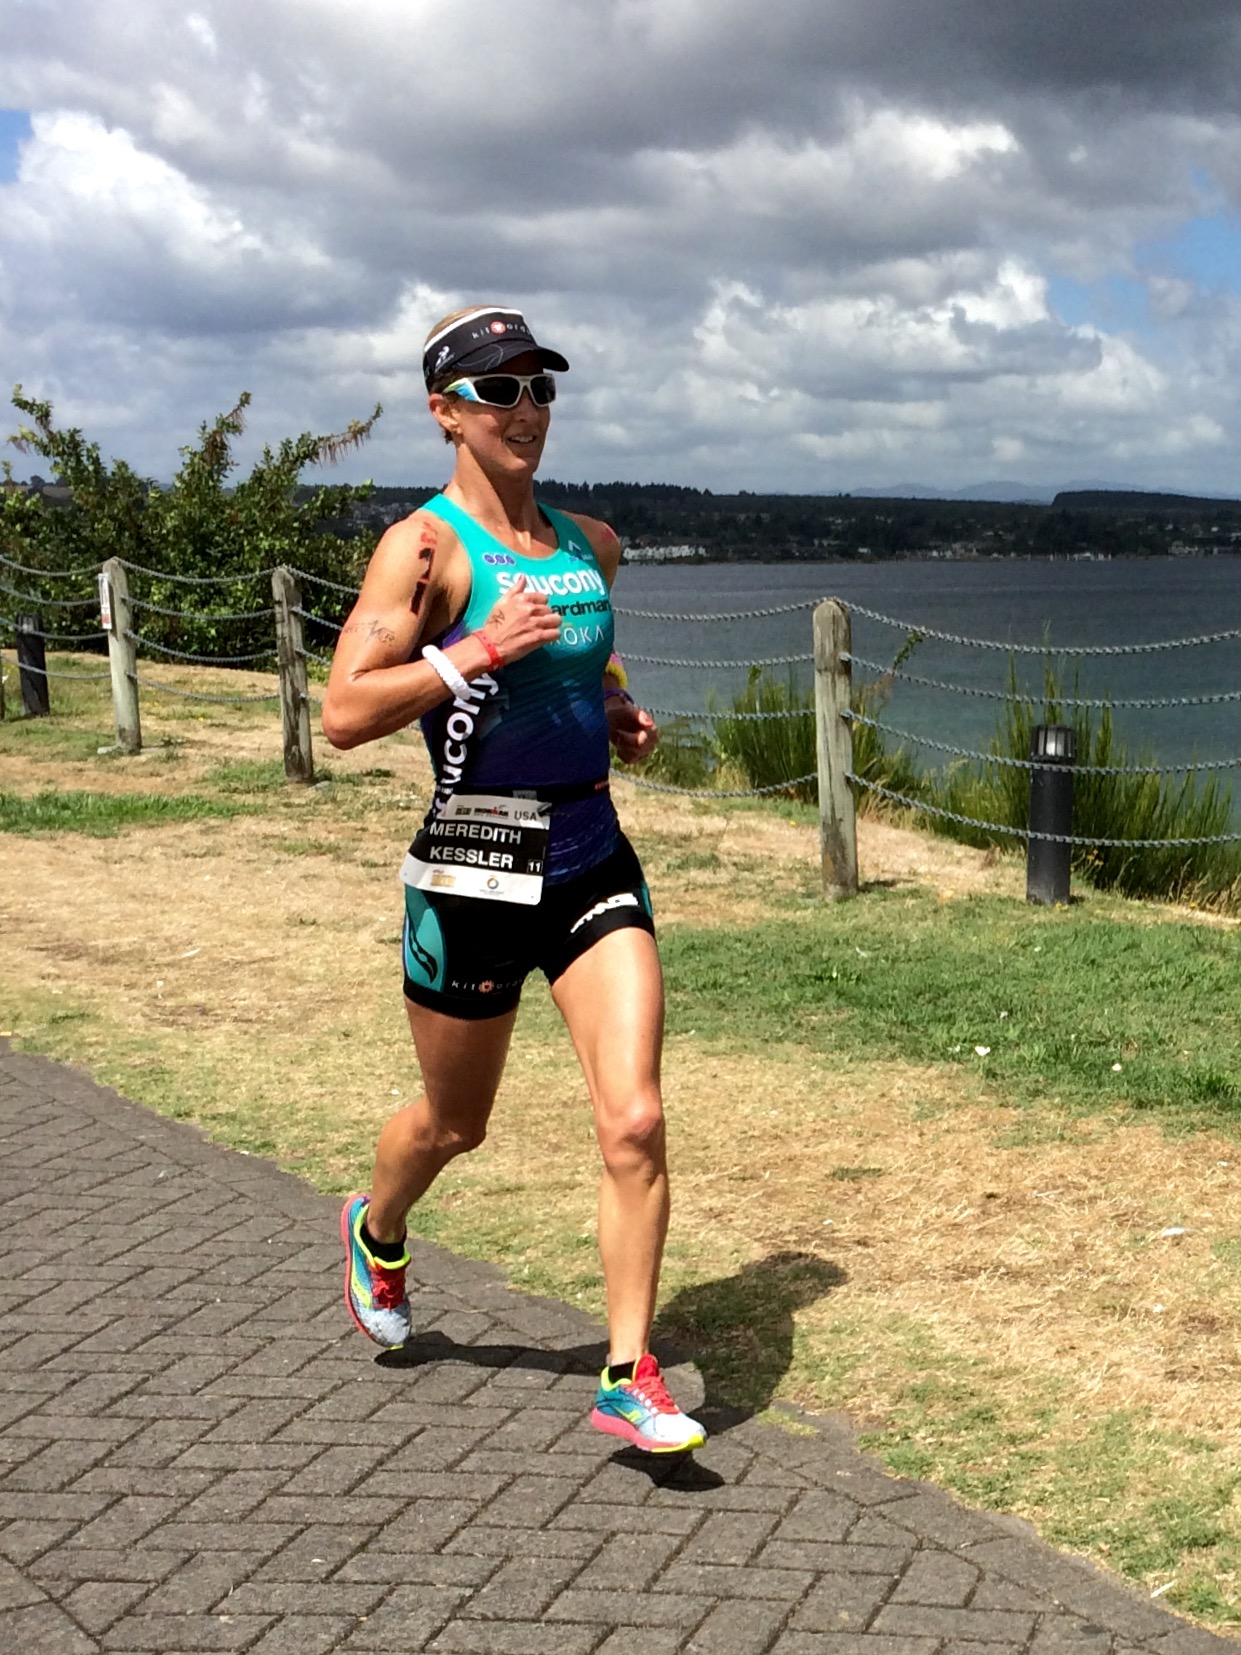 Meredith Kessler triathlete ironman new zealand running